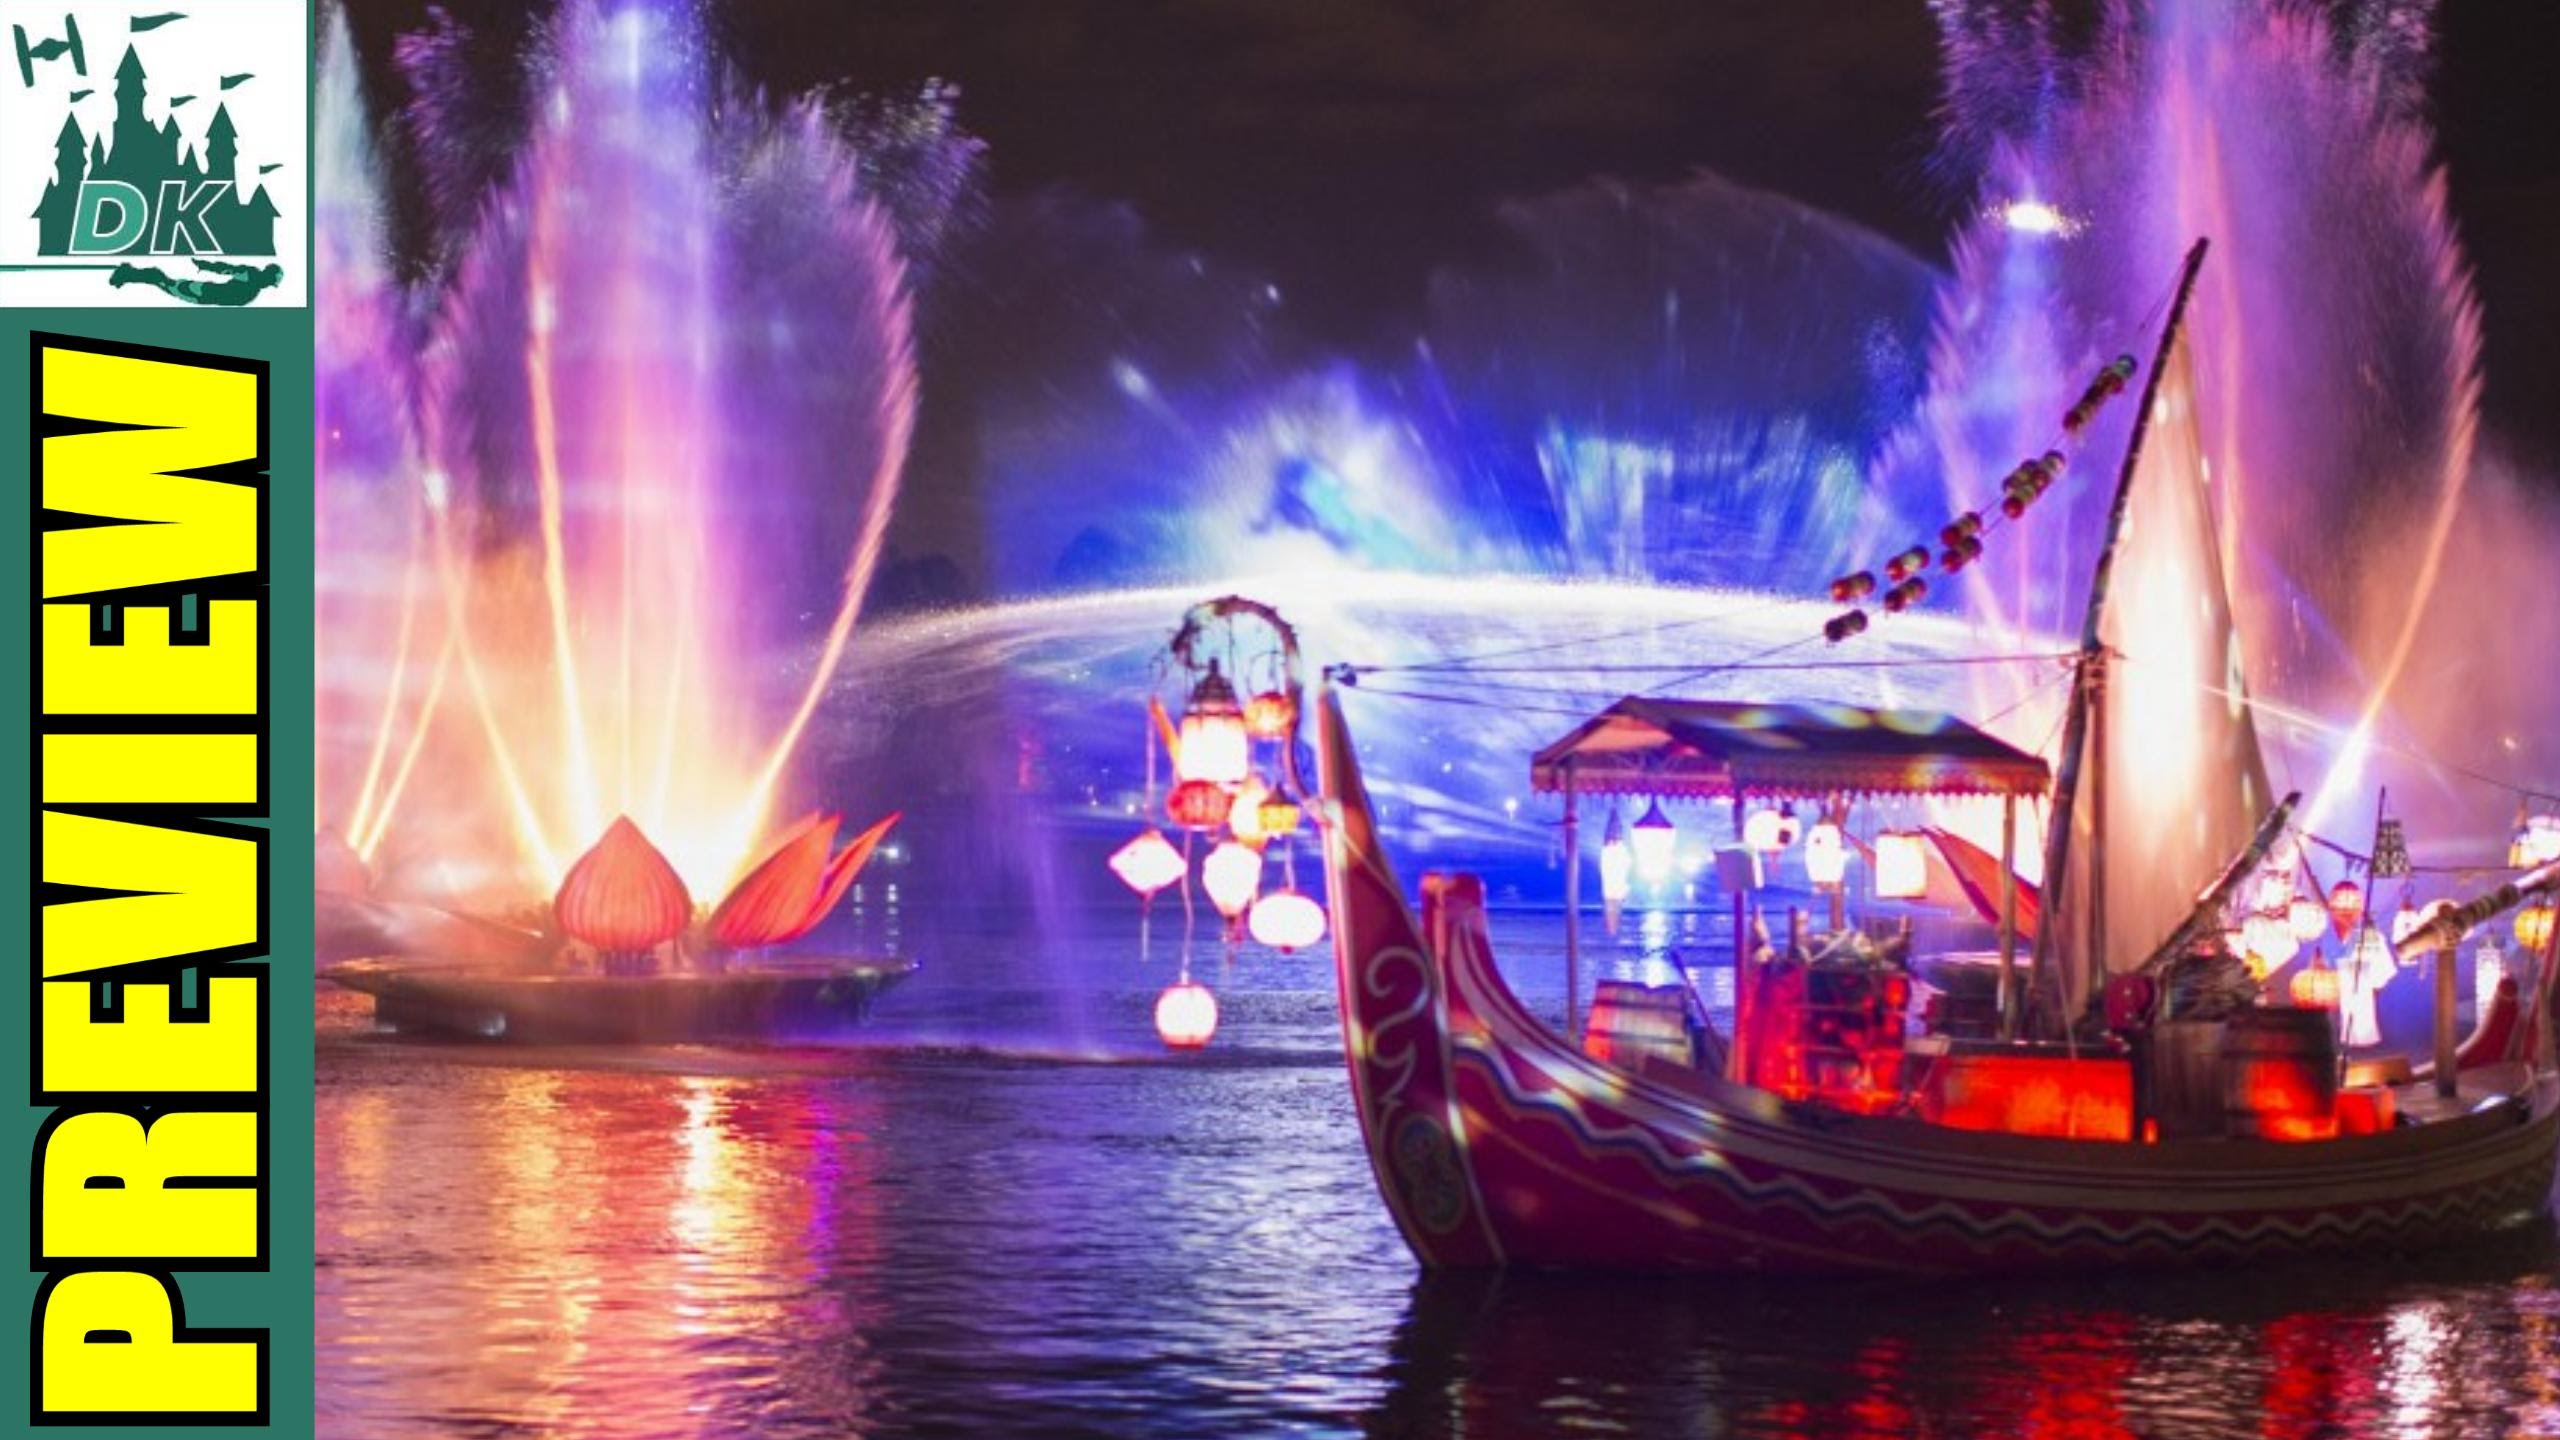 Rivers Of Light Preview At Walt Disney World's Animal Kingdom